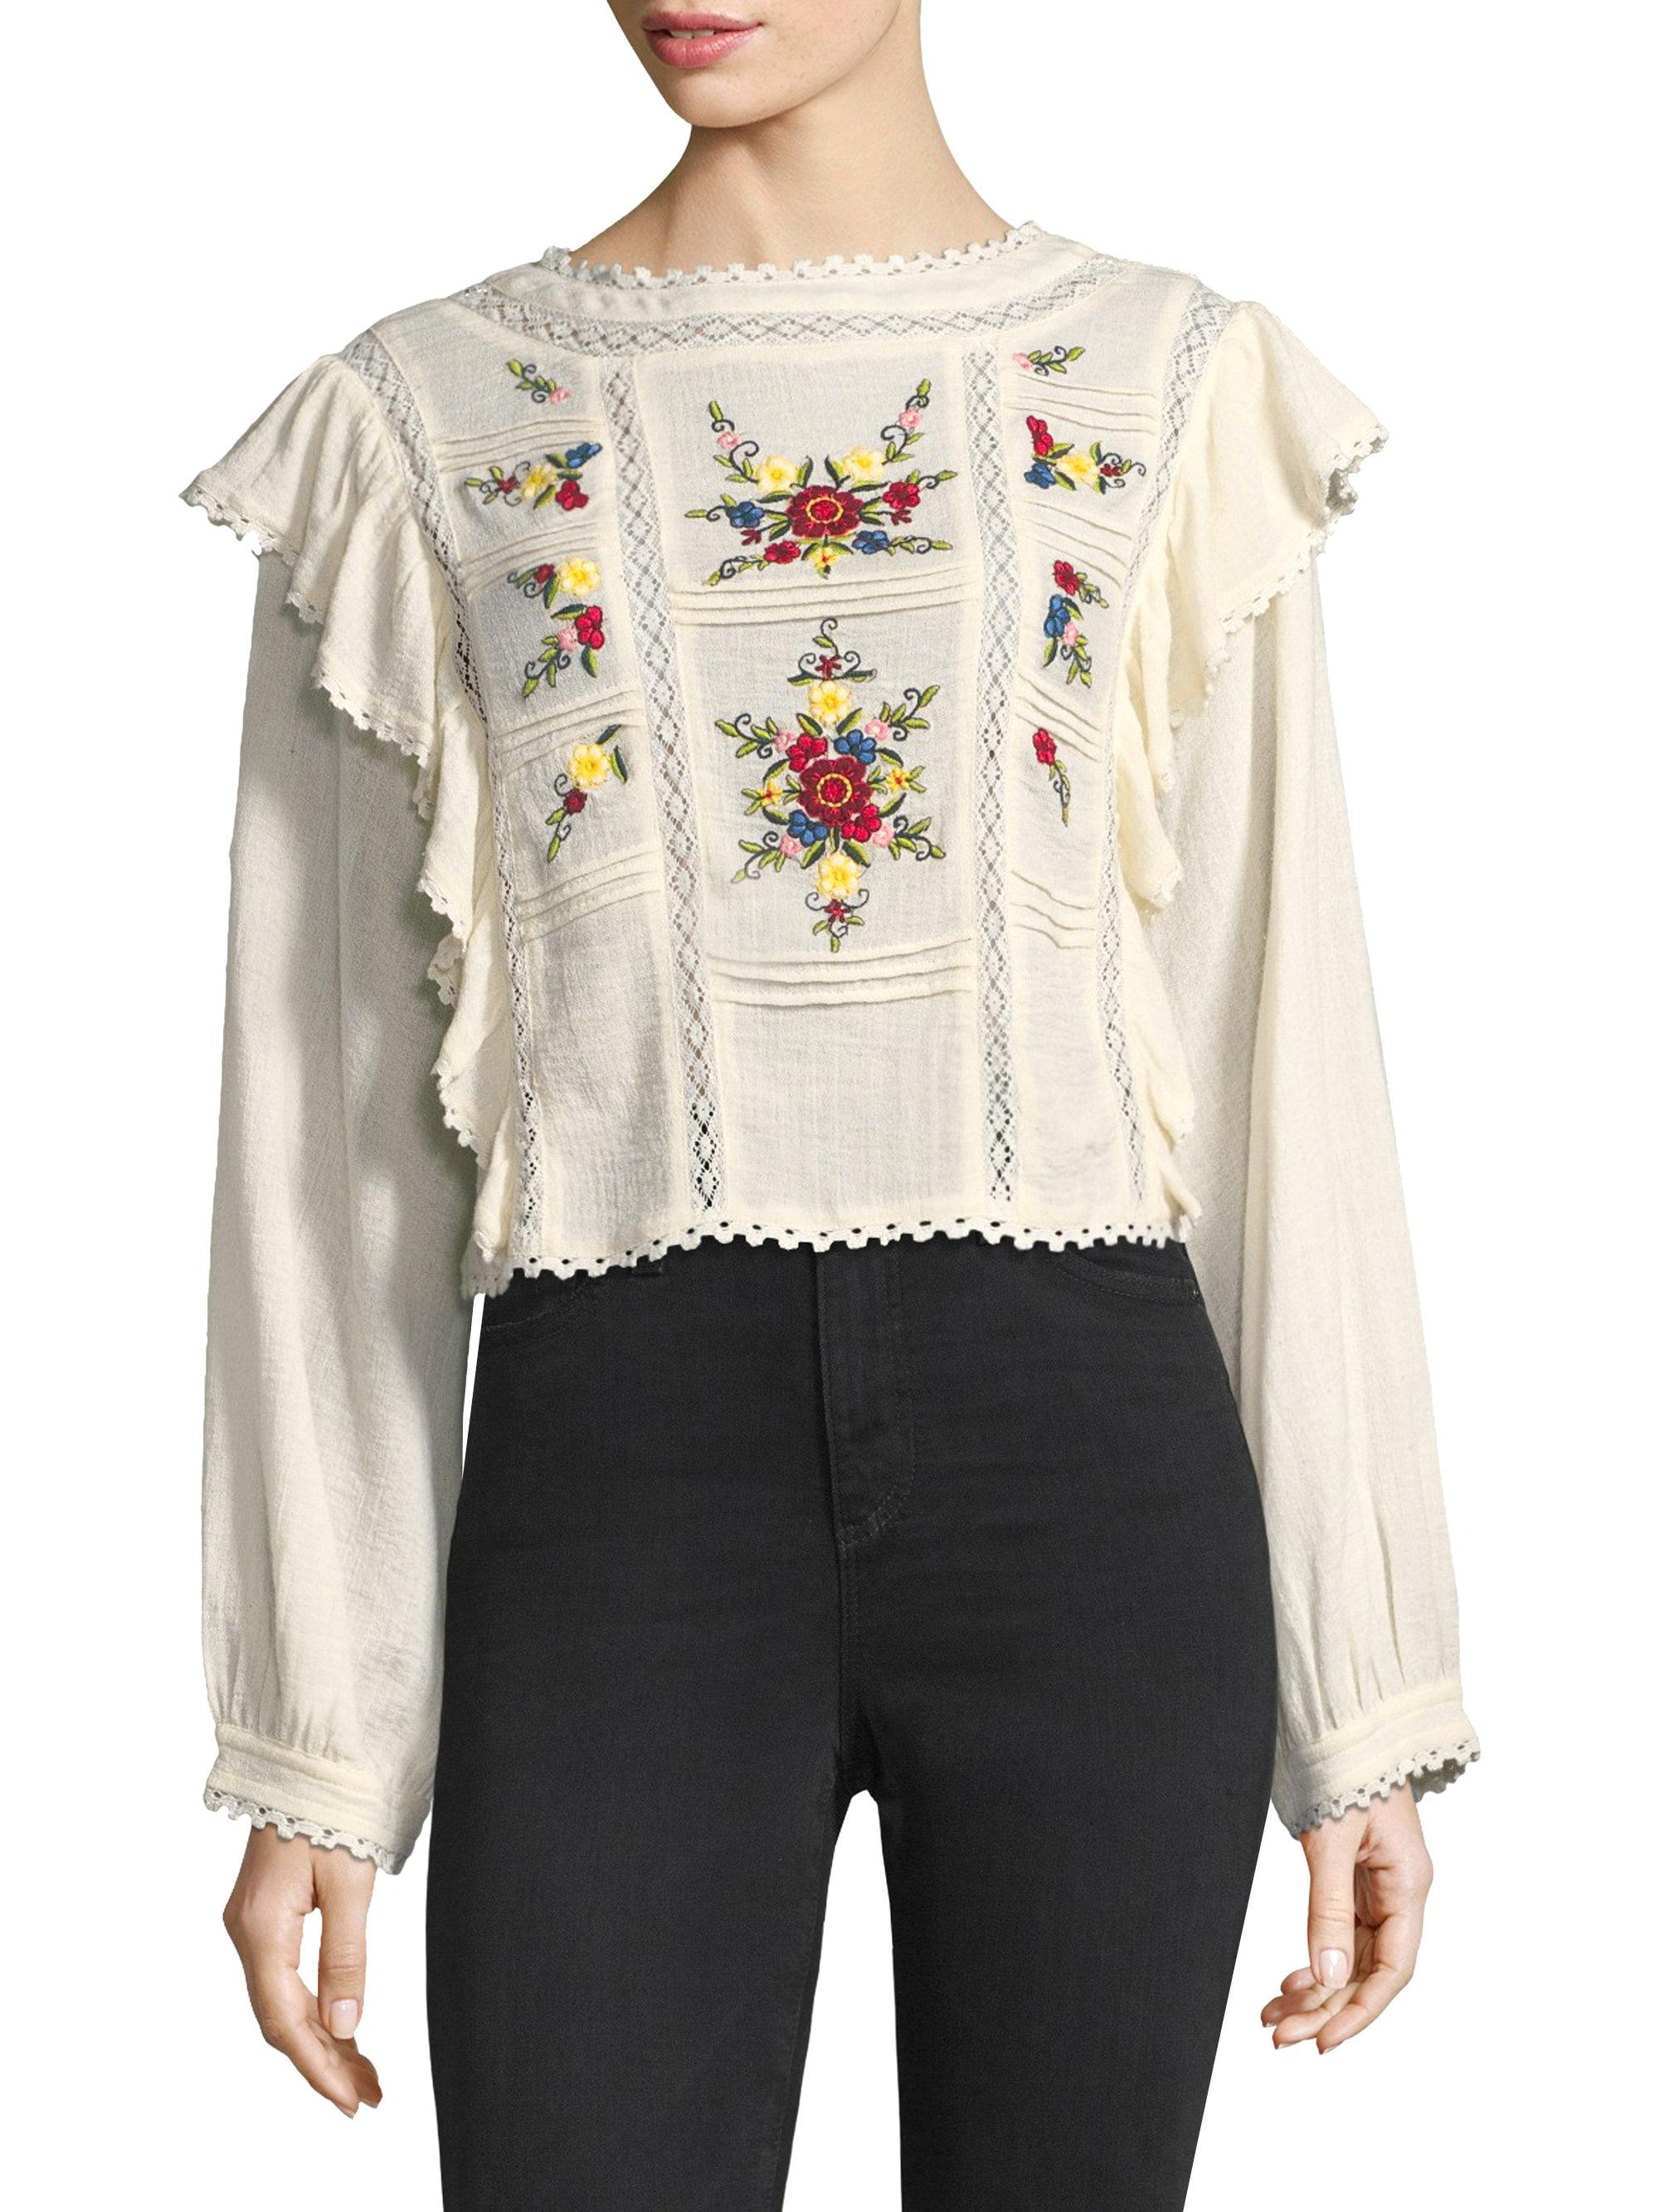 844e5d6e55ddf0 Free People The Amy Embroidered Top - Lyst